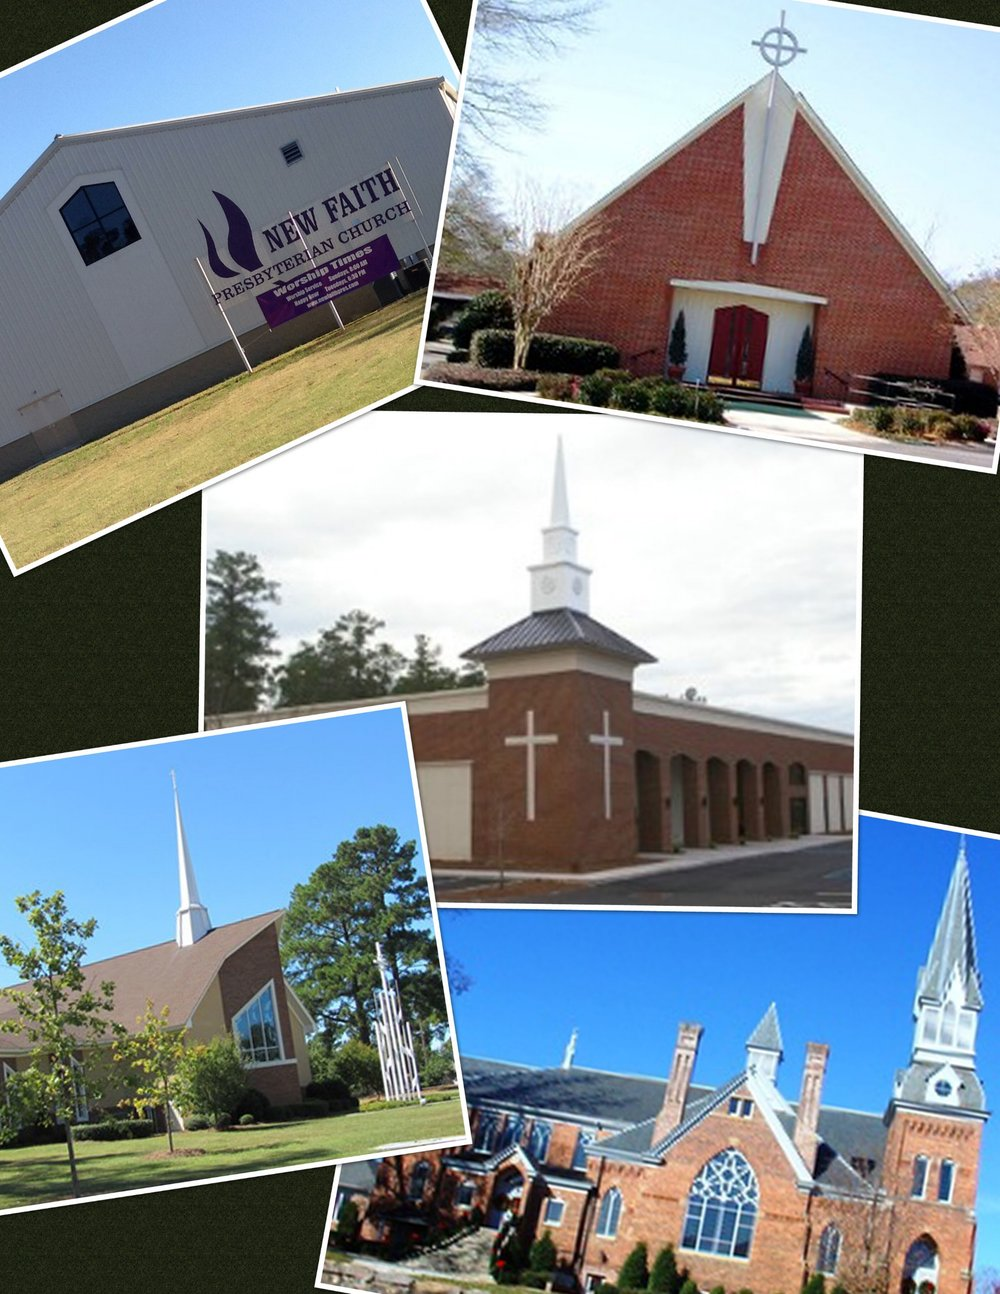 First Presbyterian Church - Laurens New Kirk Presbyterian Church, Blythewood McGregor Presbyterian Church, Irmo South Aiken Presbyterian Church, Aiken New Faith Presbyterian Church, Greenwood